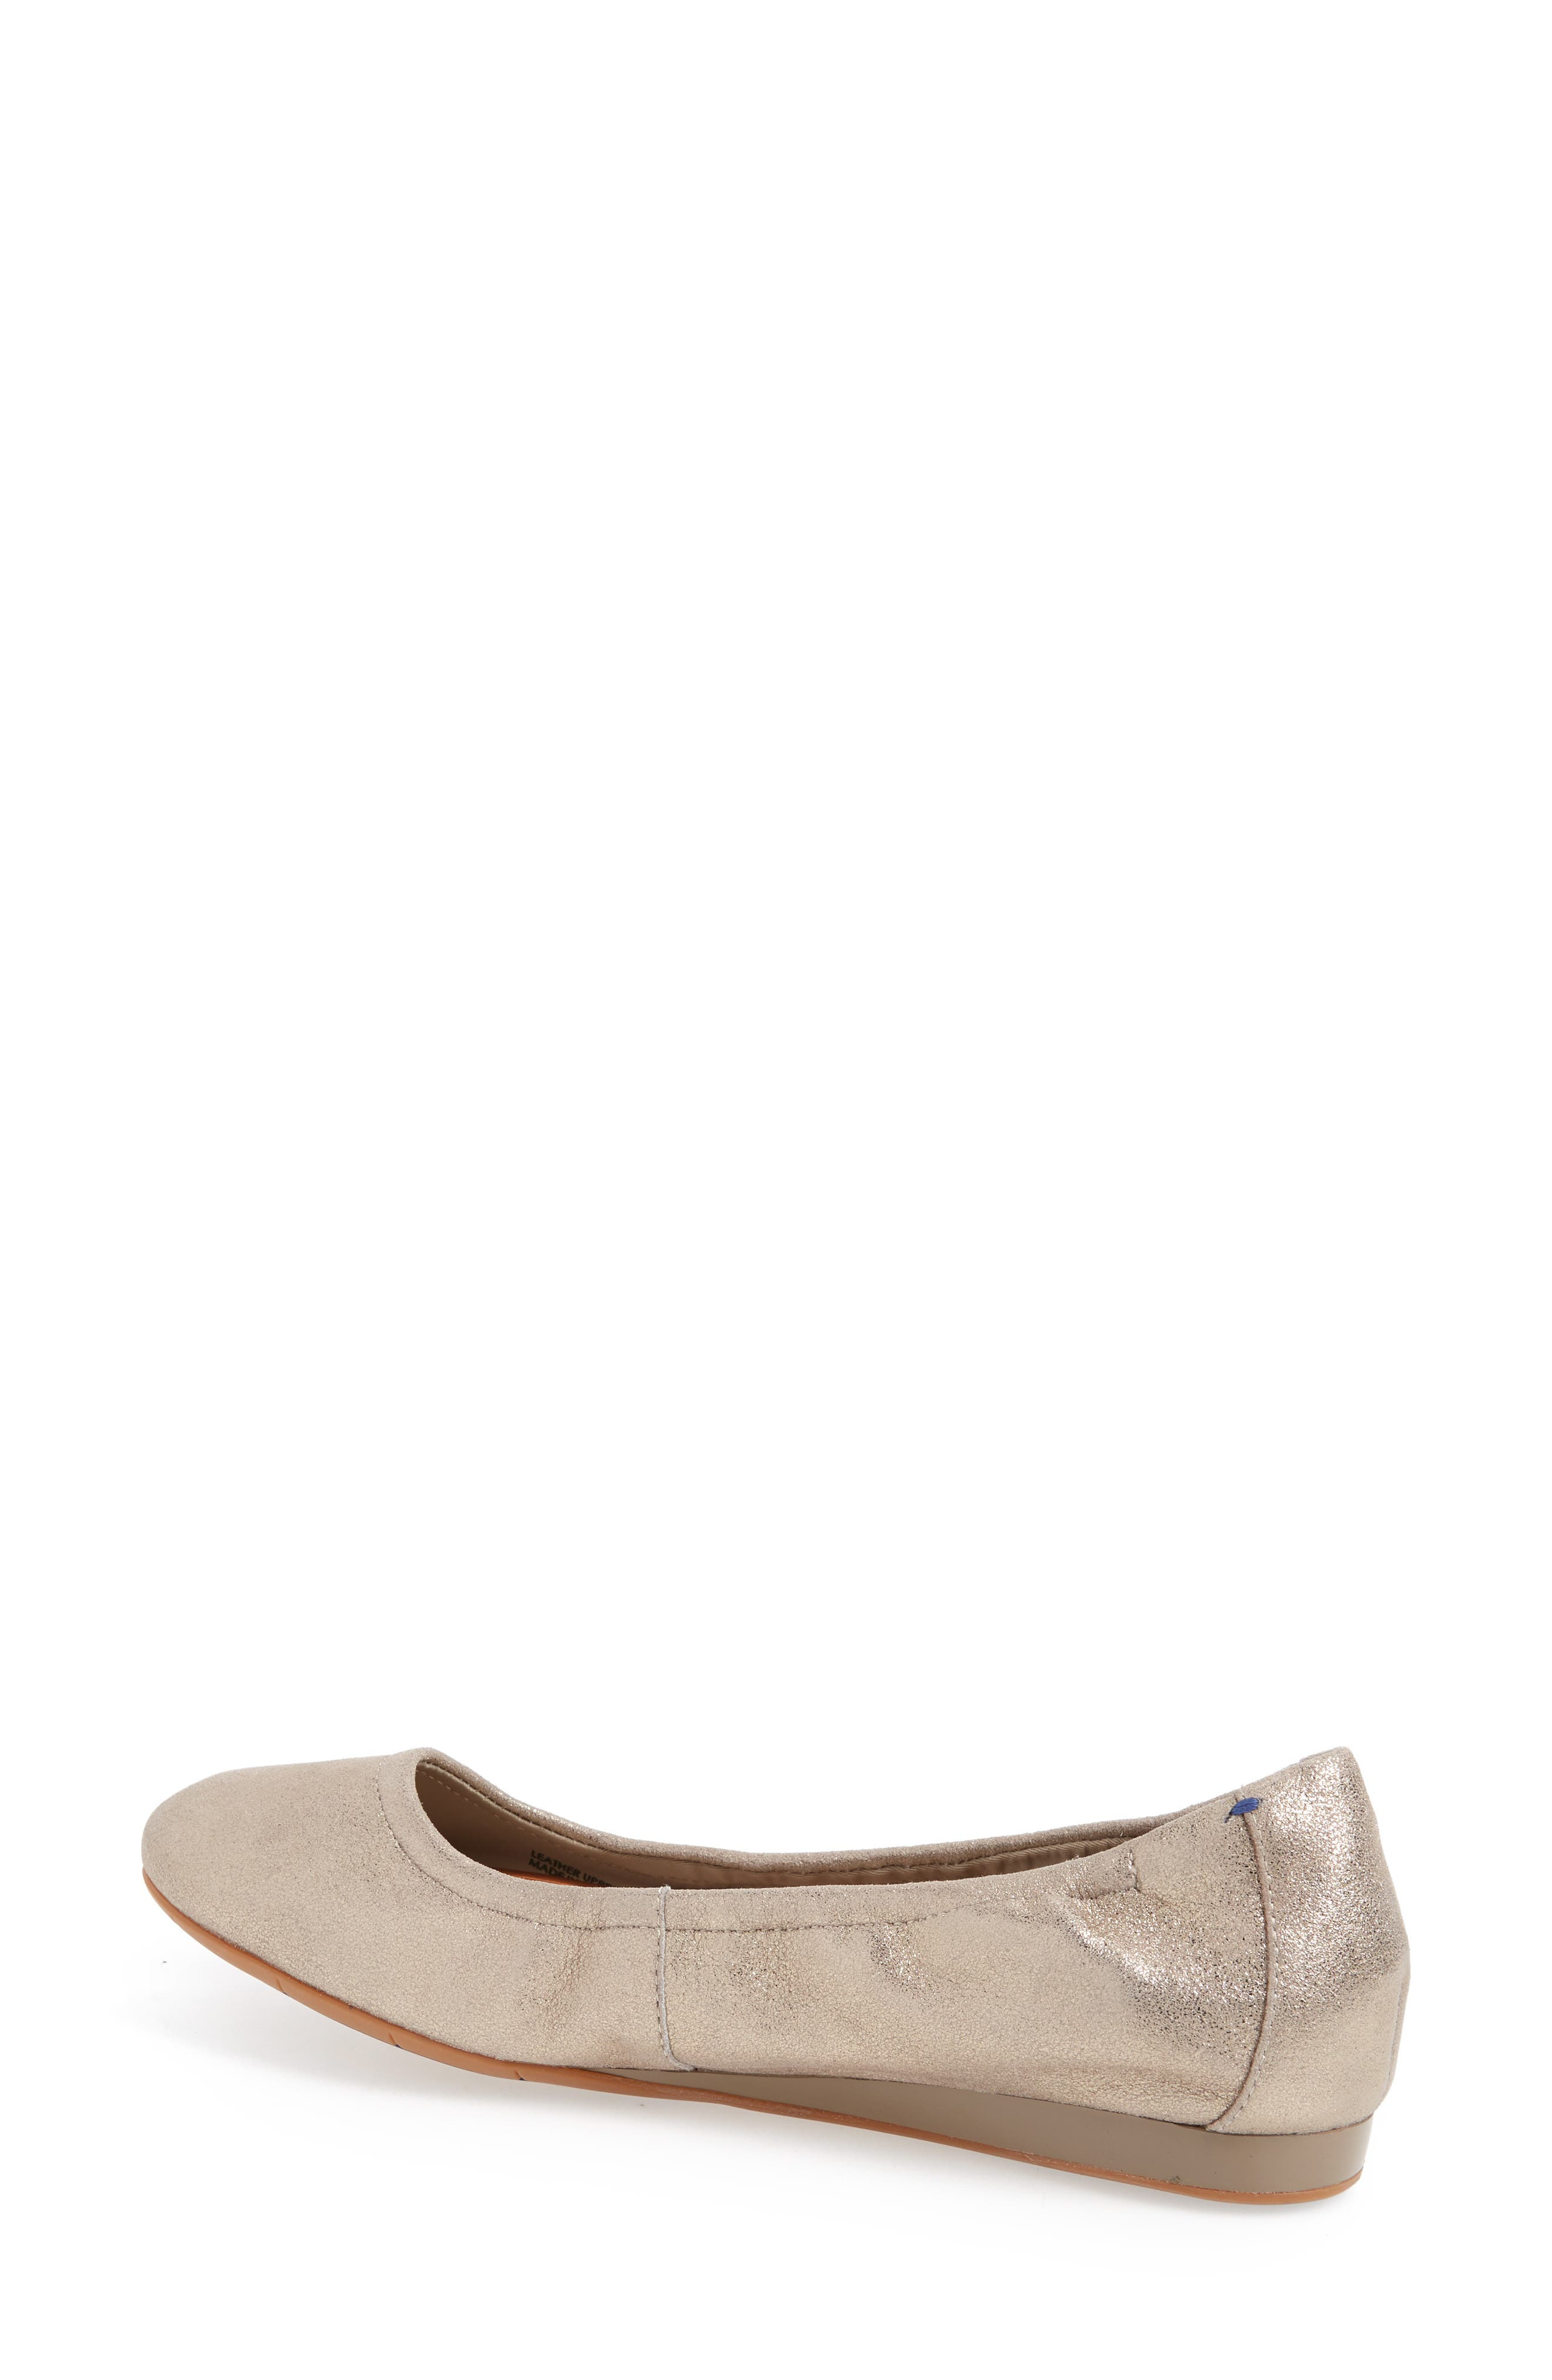 Helena Flat,                             Alternate thumbnail 2, color,                             TAUPE NUBUCK LEATHER